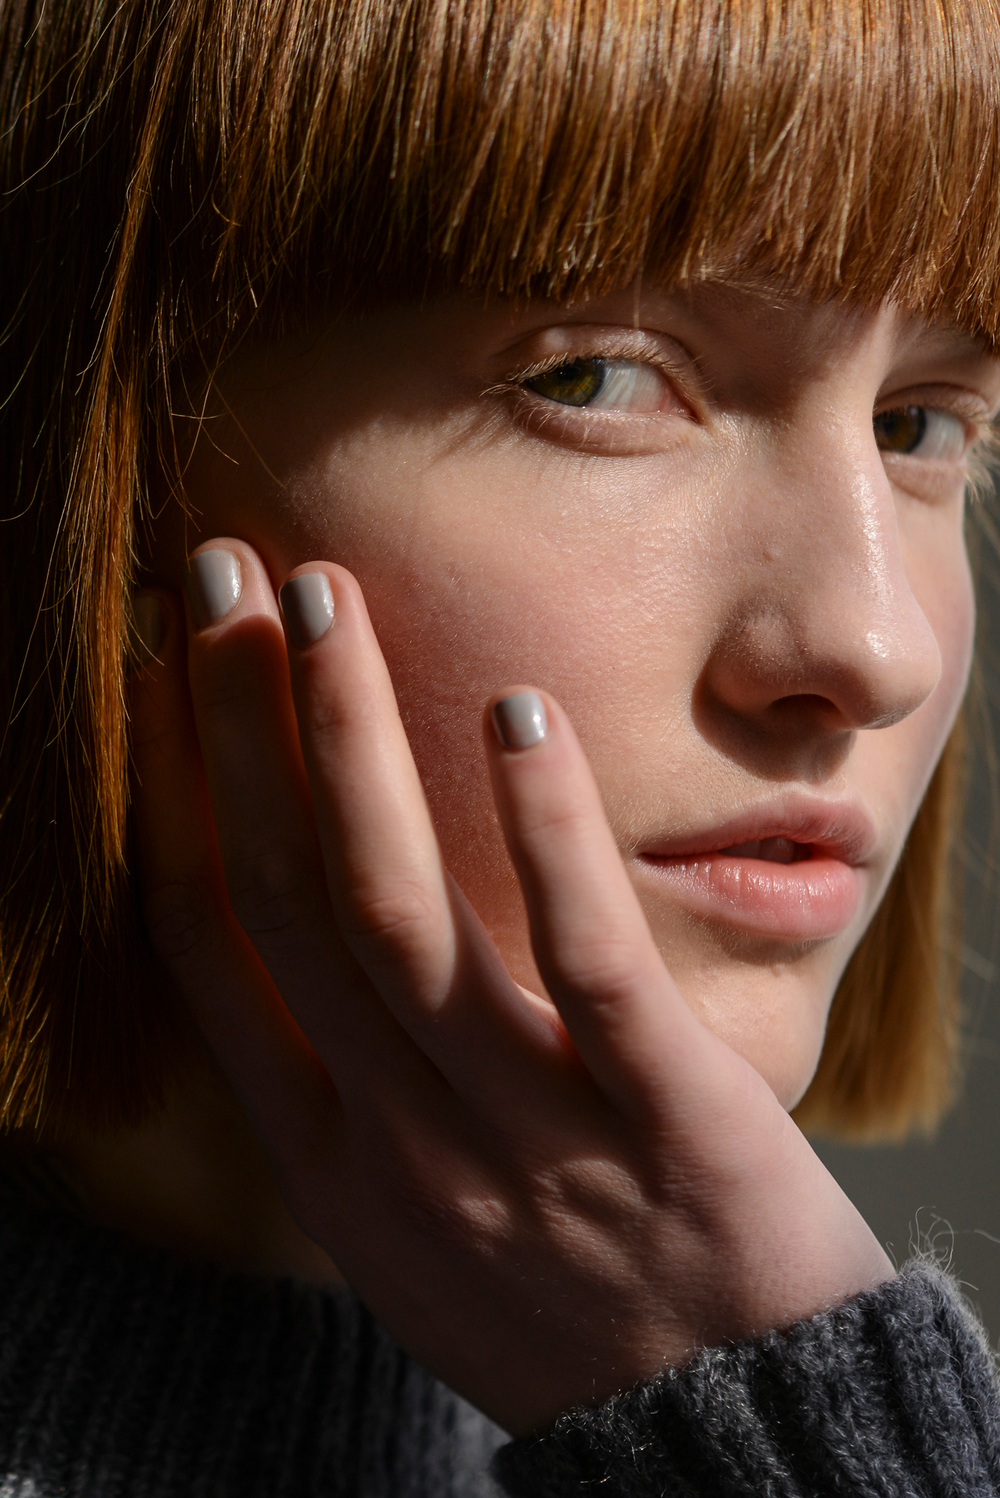 <p>China Glaze for Proenza Schouler. Photo courtesy of ©MatthewCarasella/SocialShutterbug.com</p>